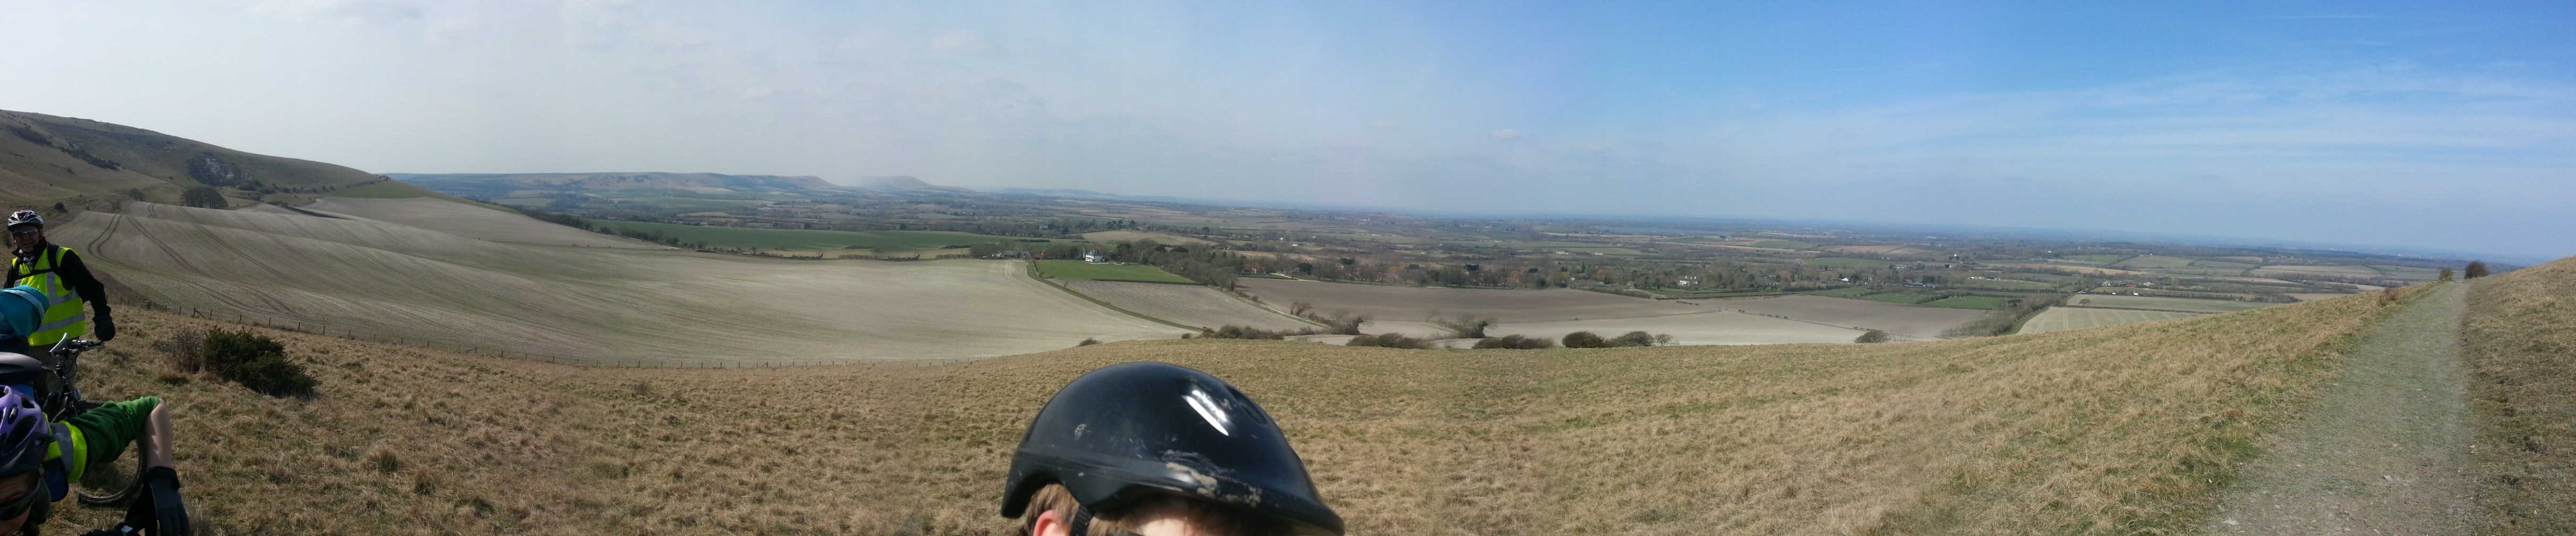 Panorama from the base of the Long Man of Wilmington while out with 4th Sevenoaks Scouts on a cycle expedition.